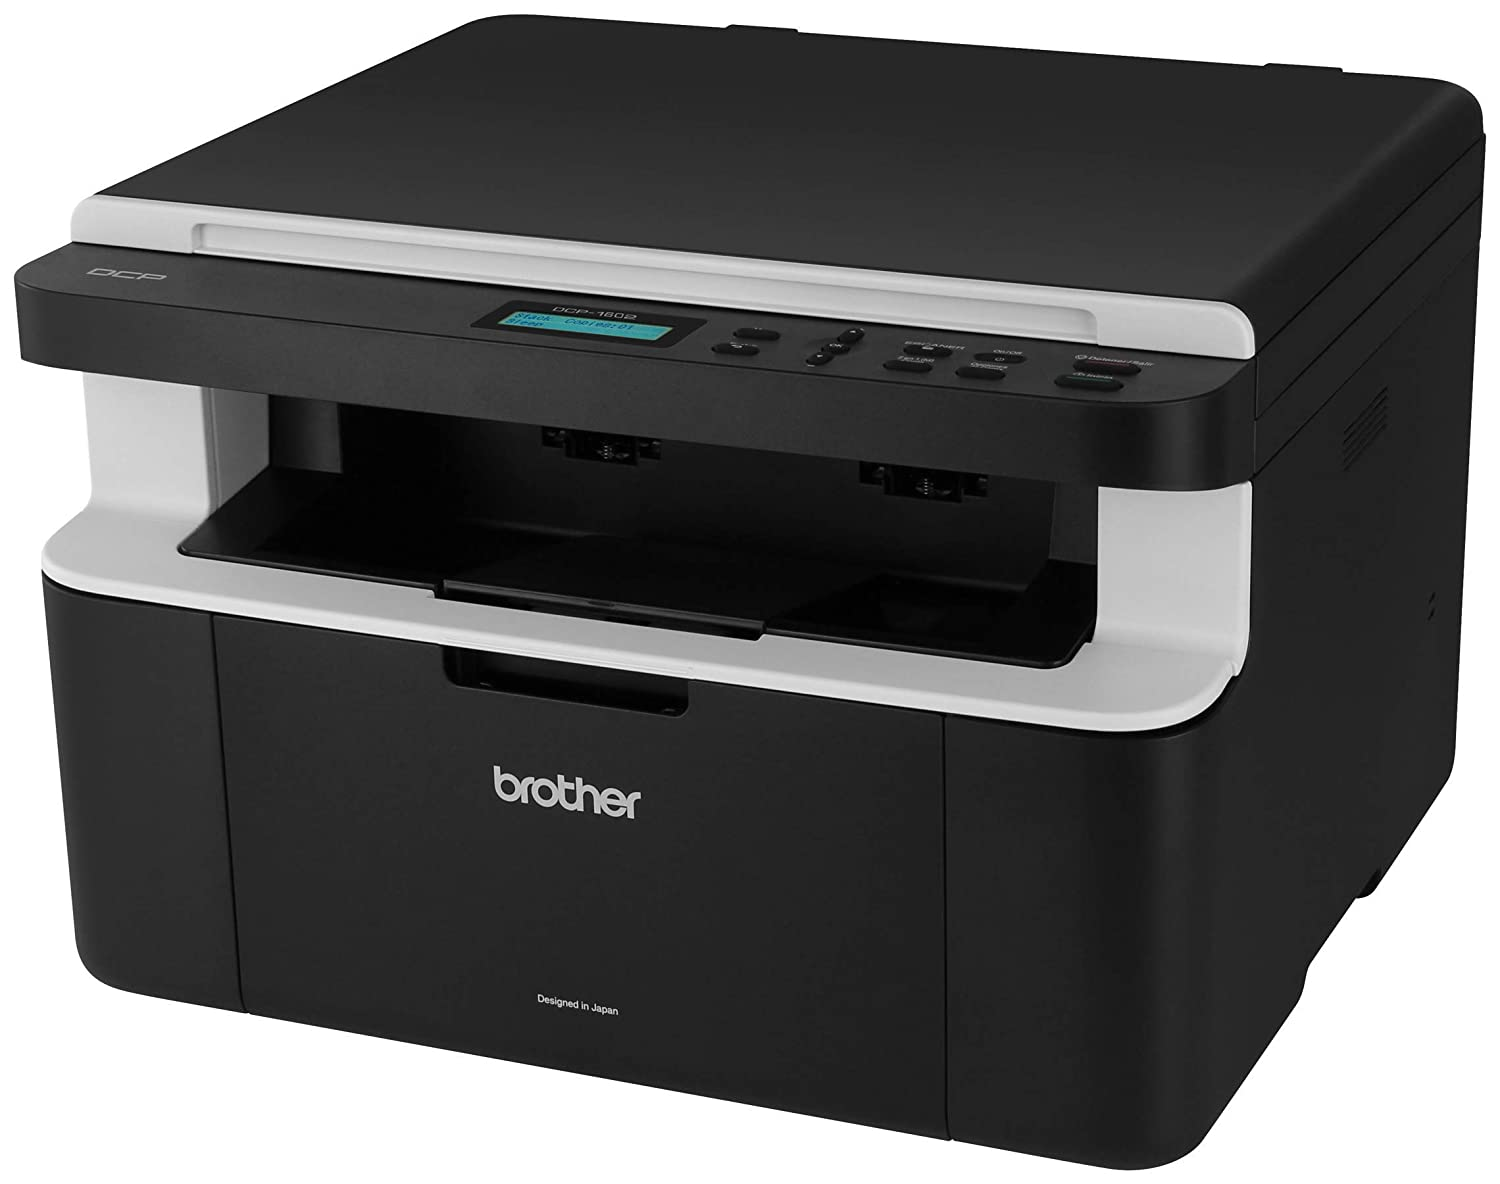 Brother DCP-1602 Multifuncional Laser 21 ppm 2400 x 600 dpi ...